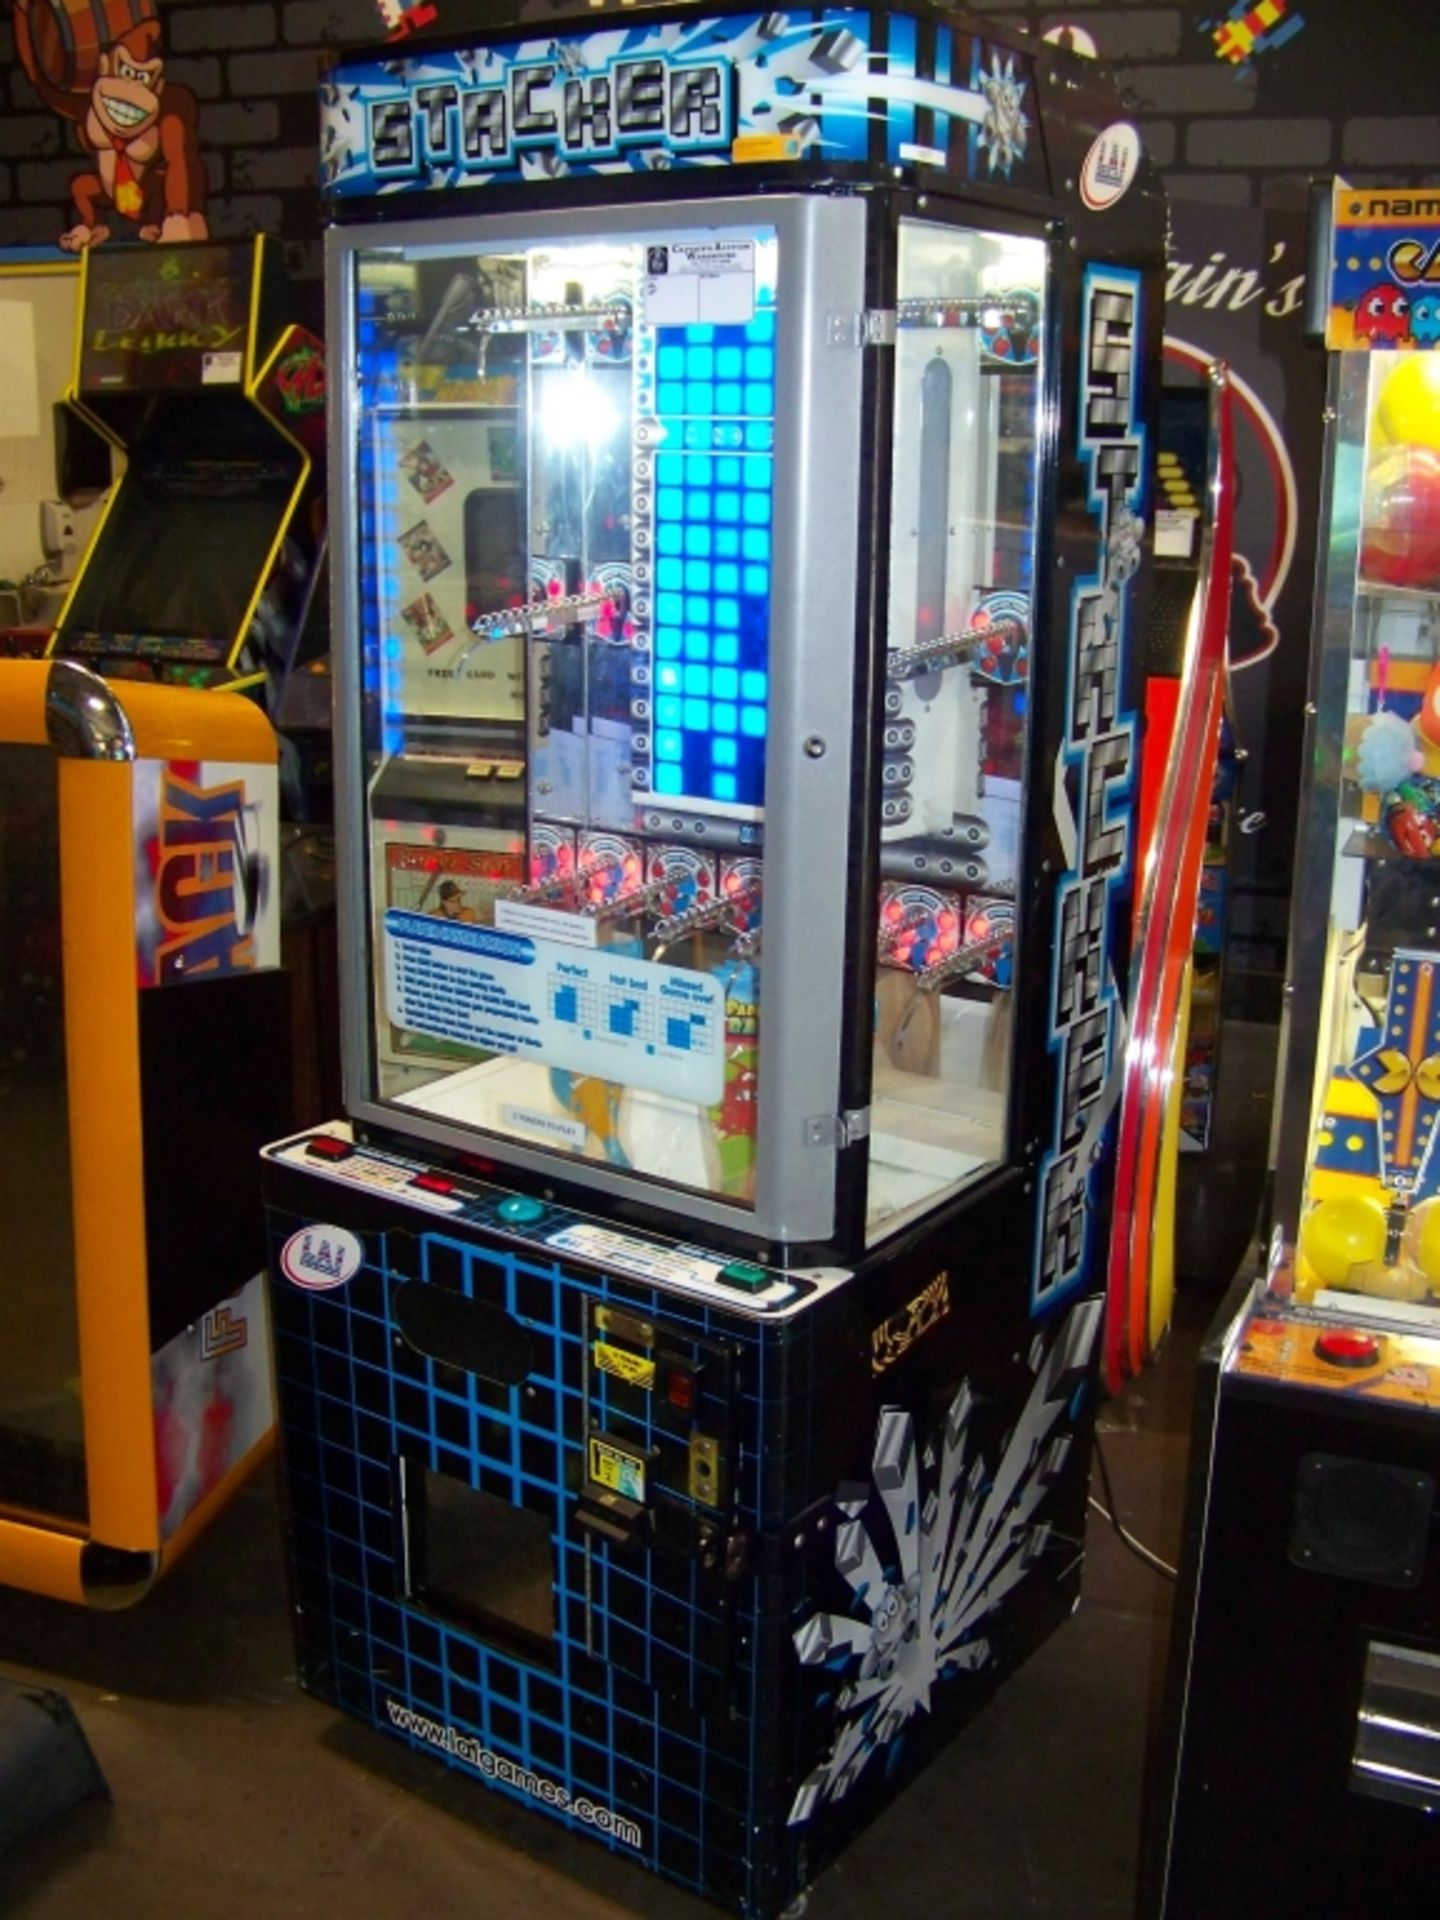 STACKER CLUB BLUE PRIZE REDEMPTION GAME D - Image 2 of 4